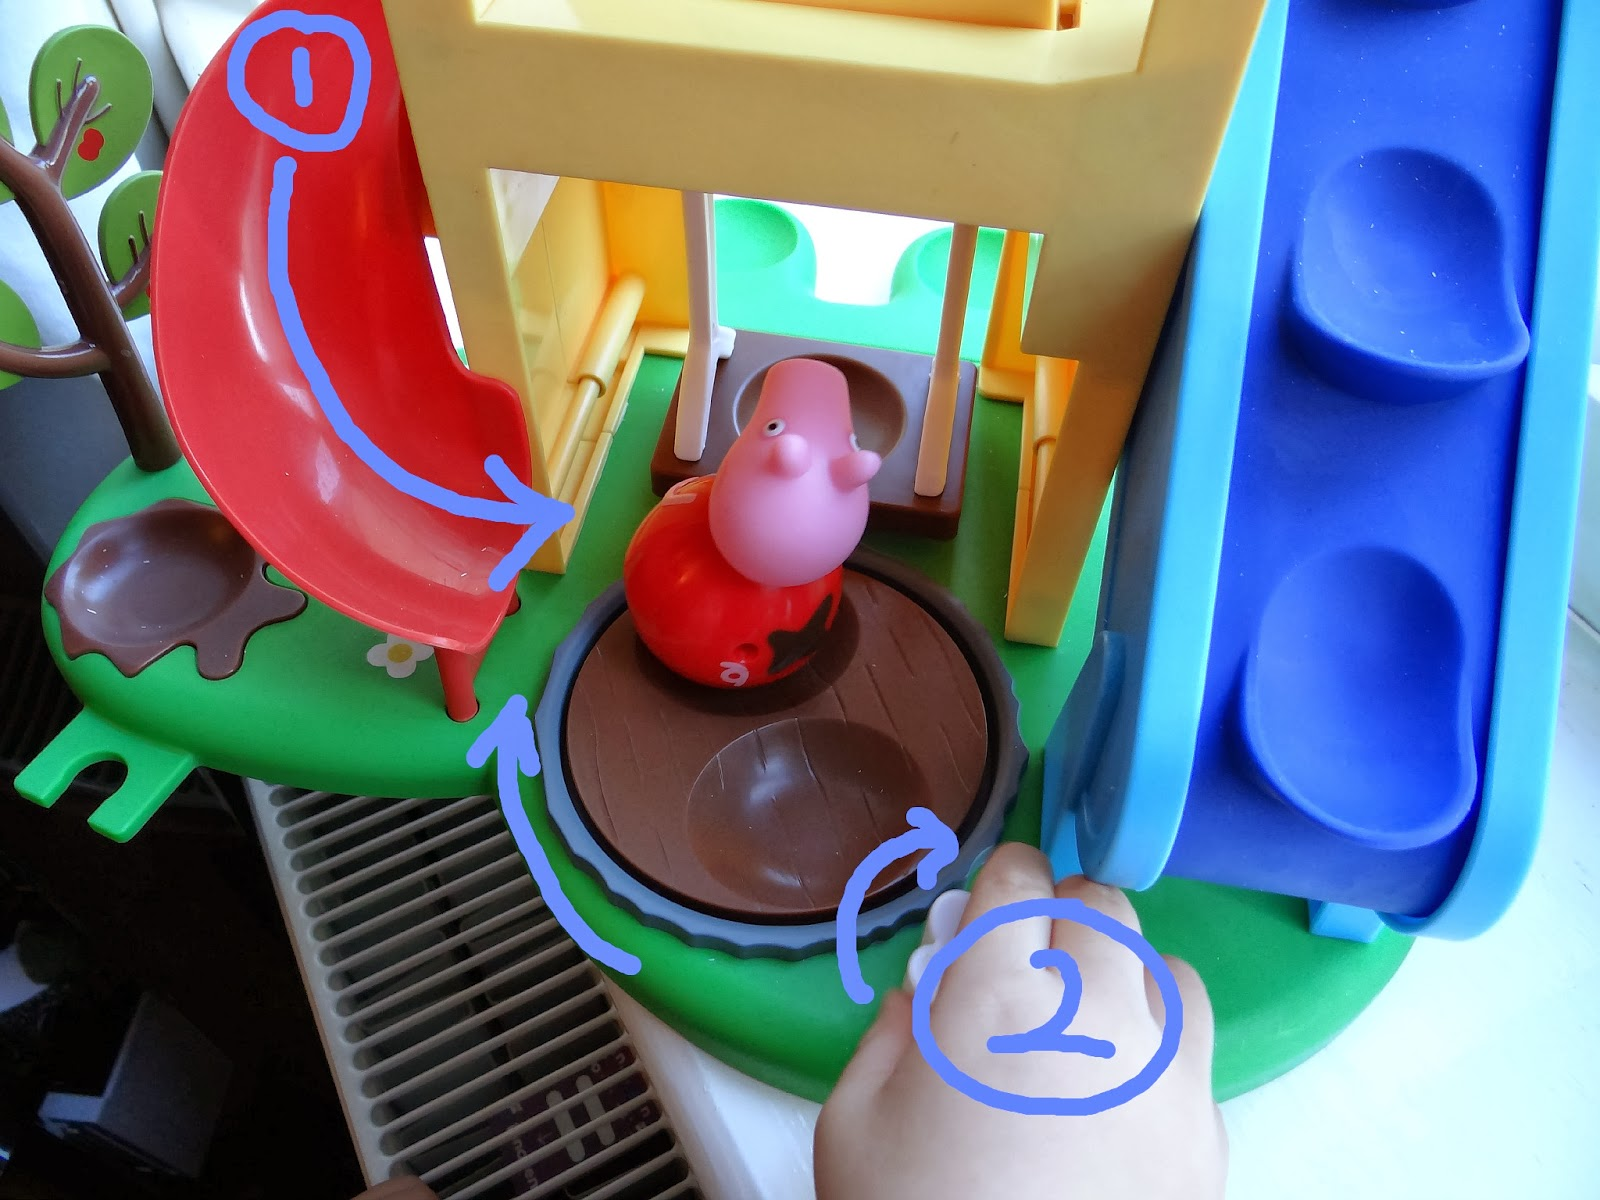 Peppa Pig Weebles Wind and Wobble PlayHouse, Peppa Pig Weebles Pull-along Wobbily Train, Peppa Pig Weebles Push along Wobbily Car